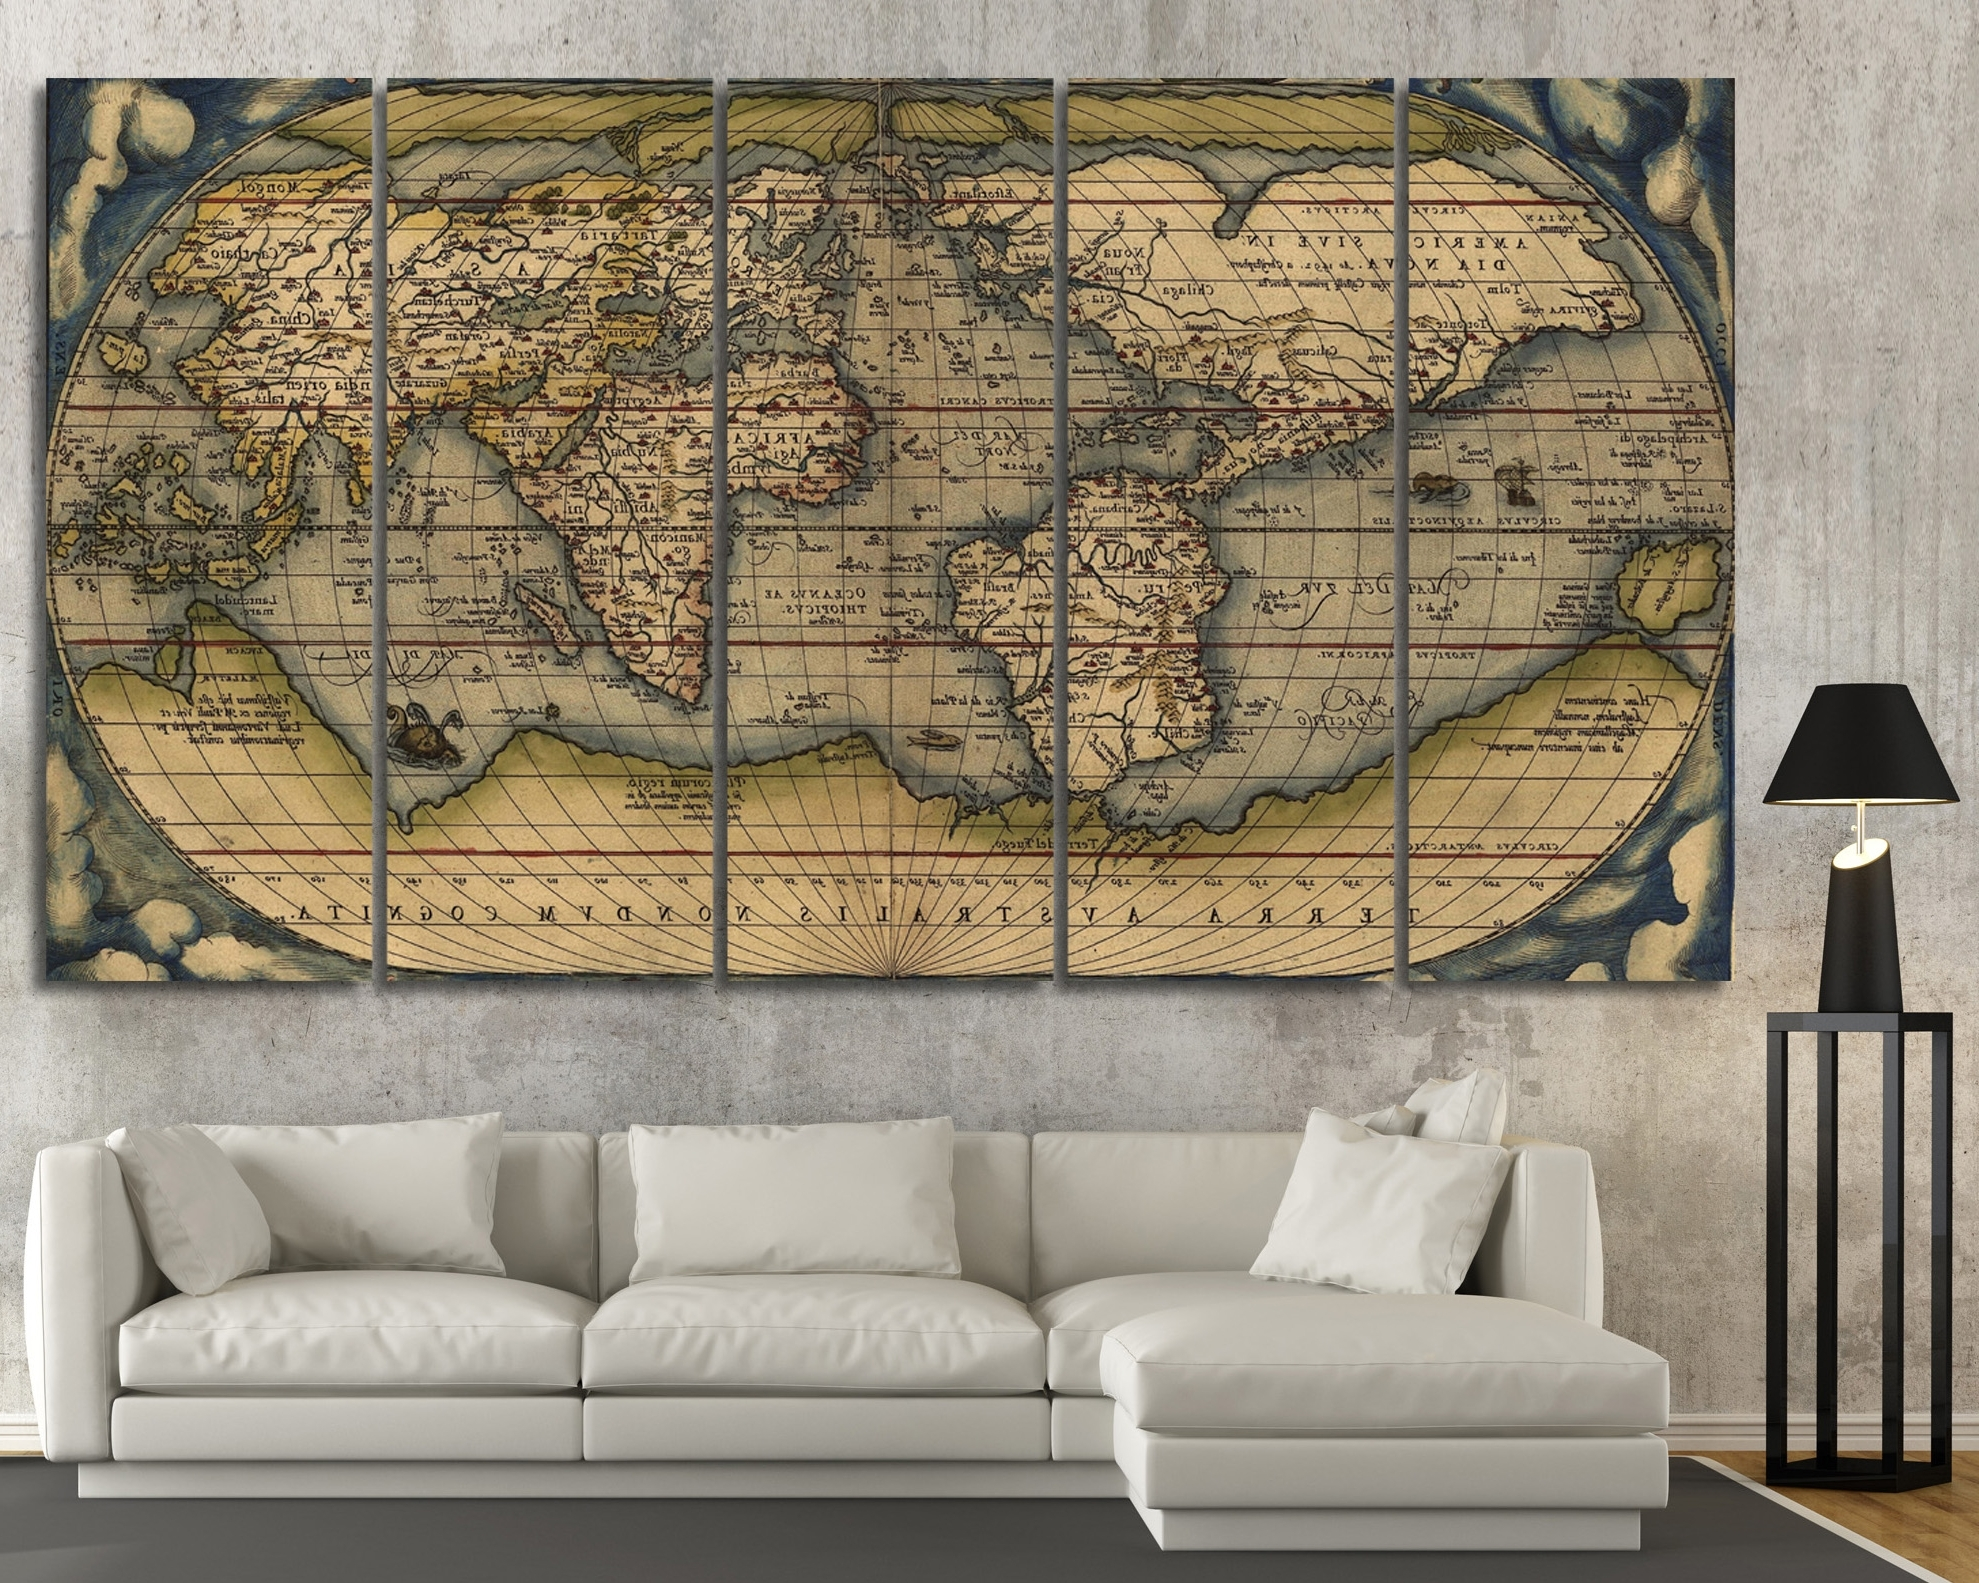 Large Vintage Wall Art Old World Map At Texelprintart Inside Popular Vintage Map Wall Art (View 4 of 15)